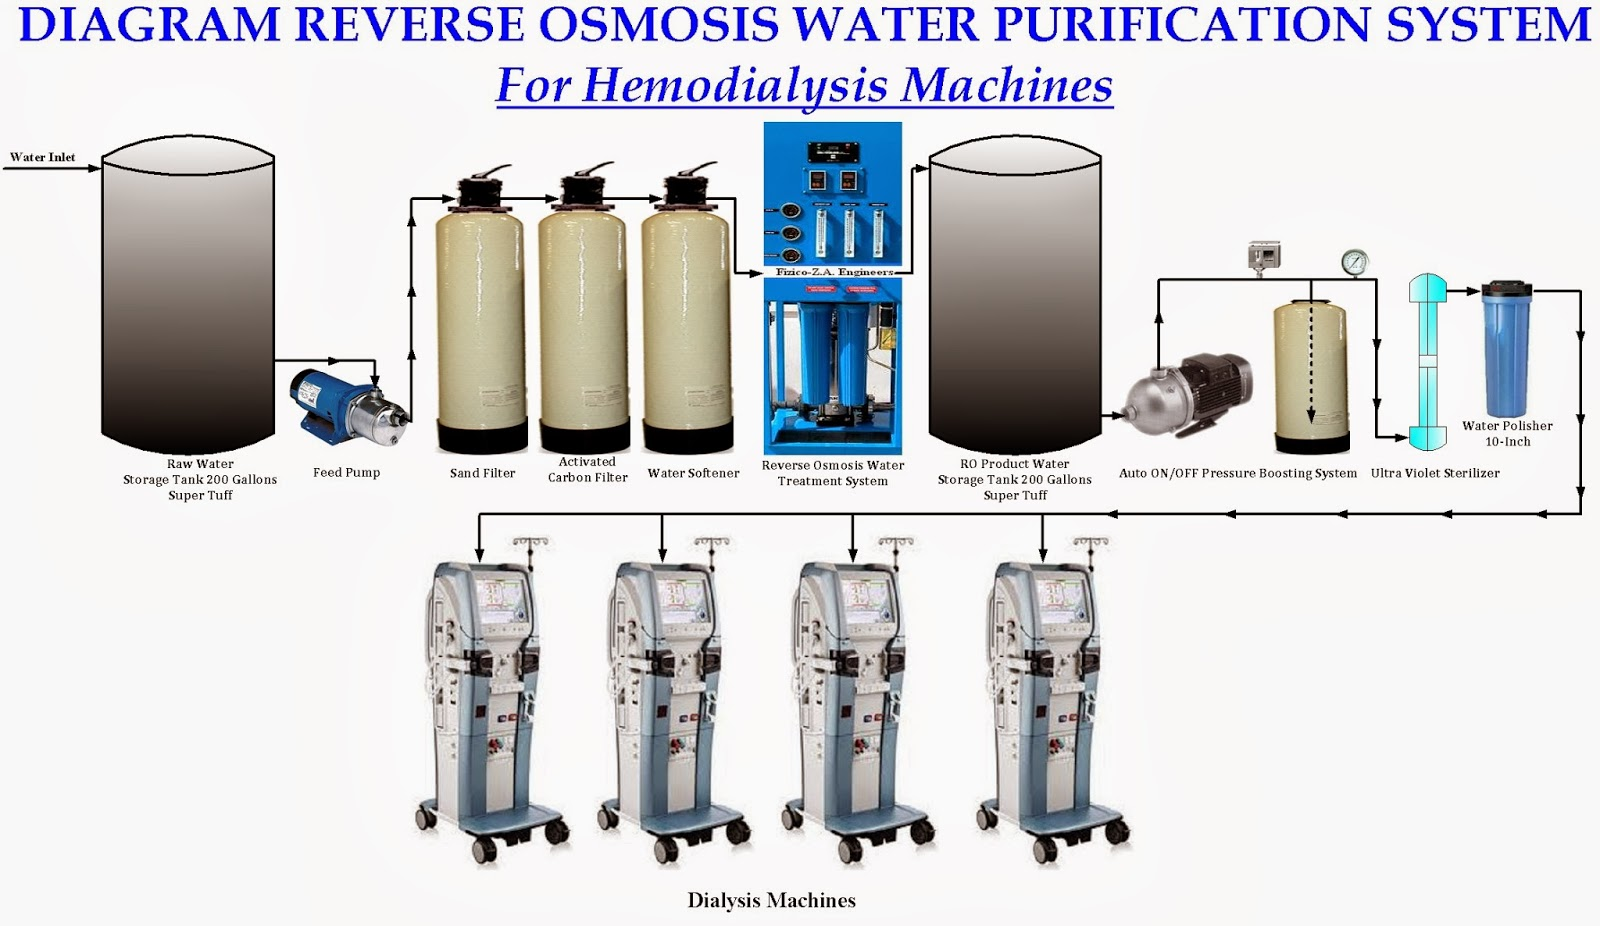 reverse osmosis water purification system for hemodialysis machines [ 1600 x 926 Pixel ]